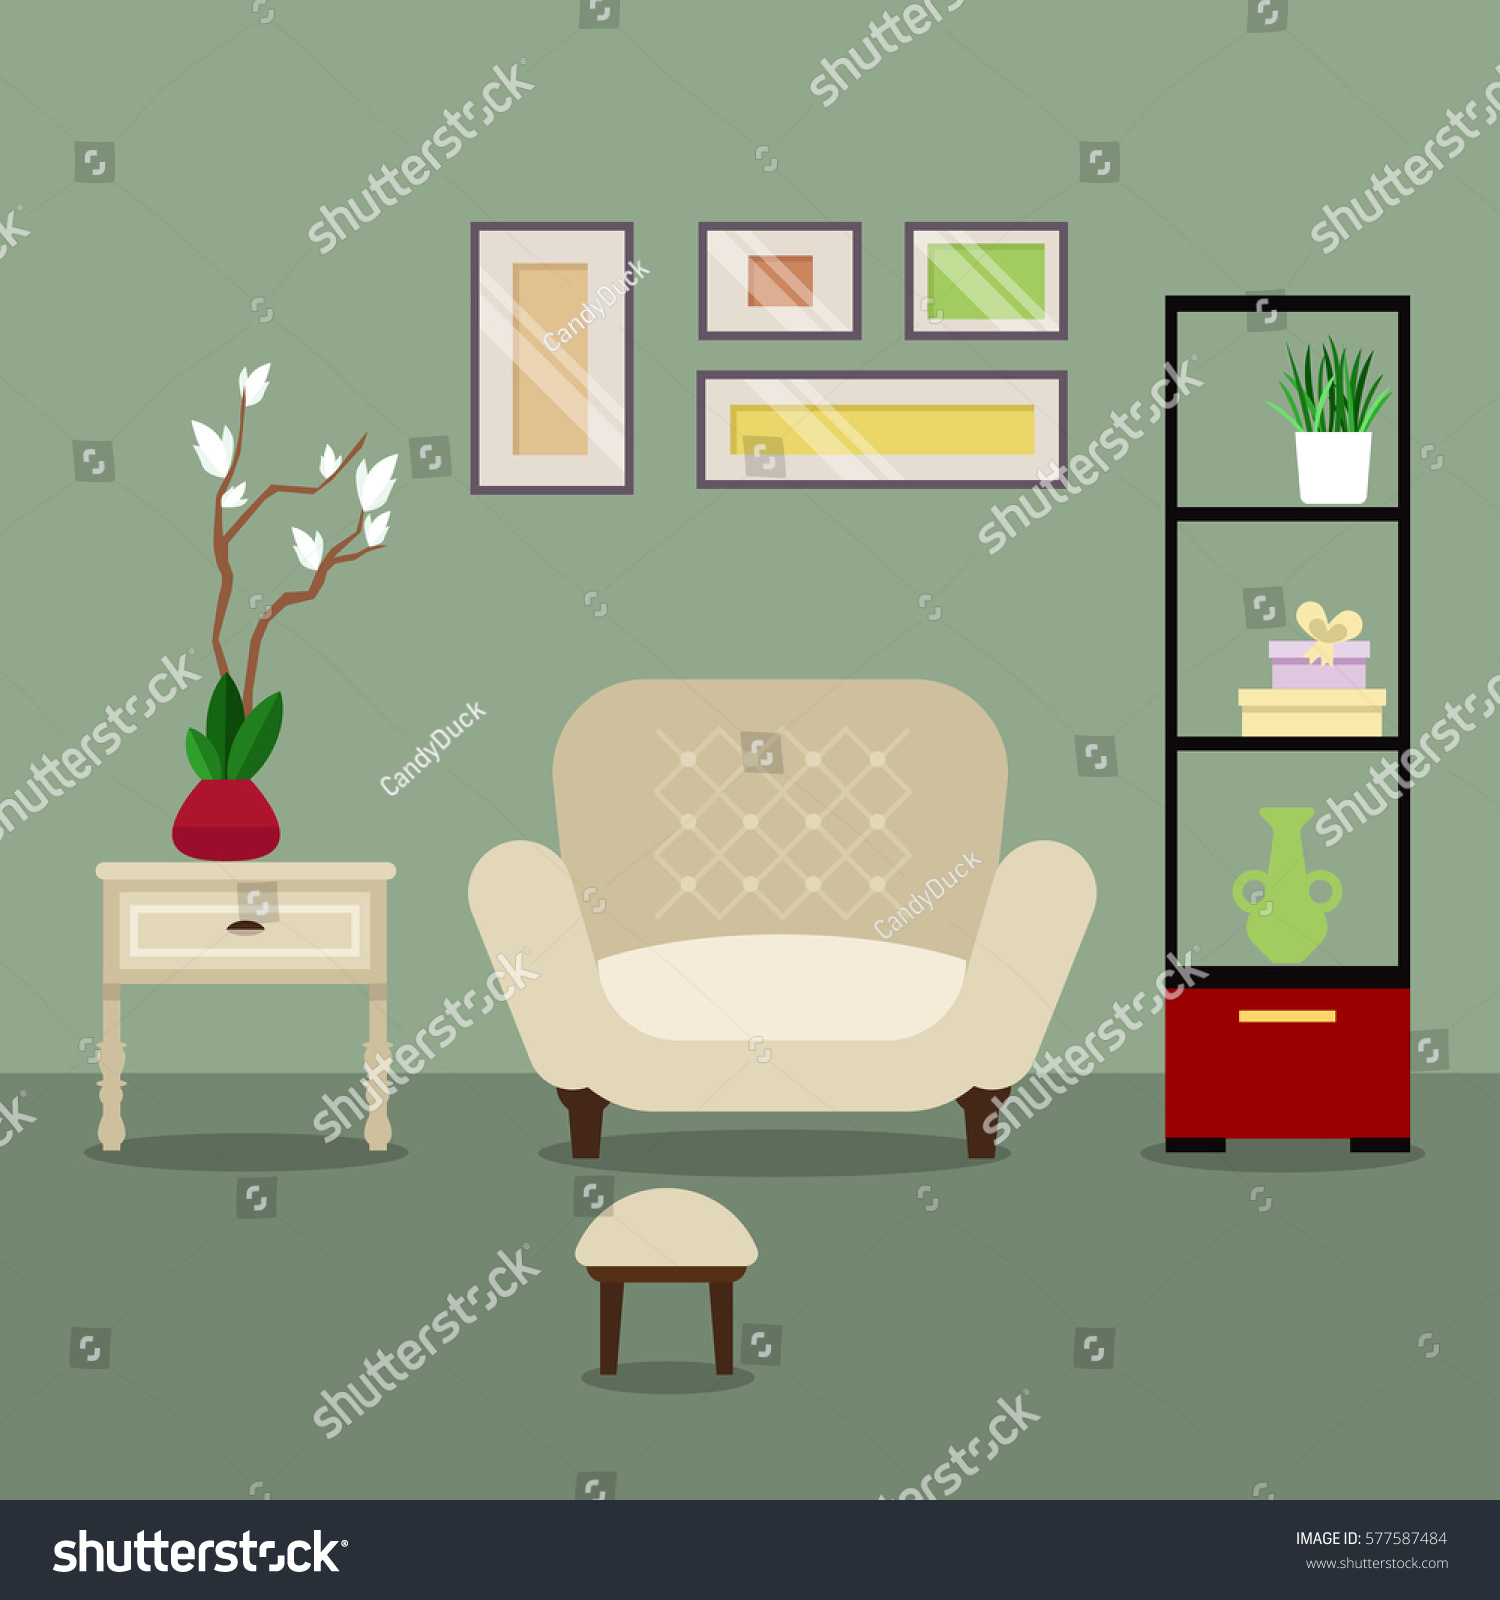 Vector image illustration room living room stock vector for Interior design images vector